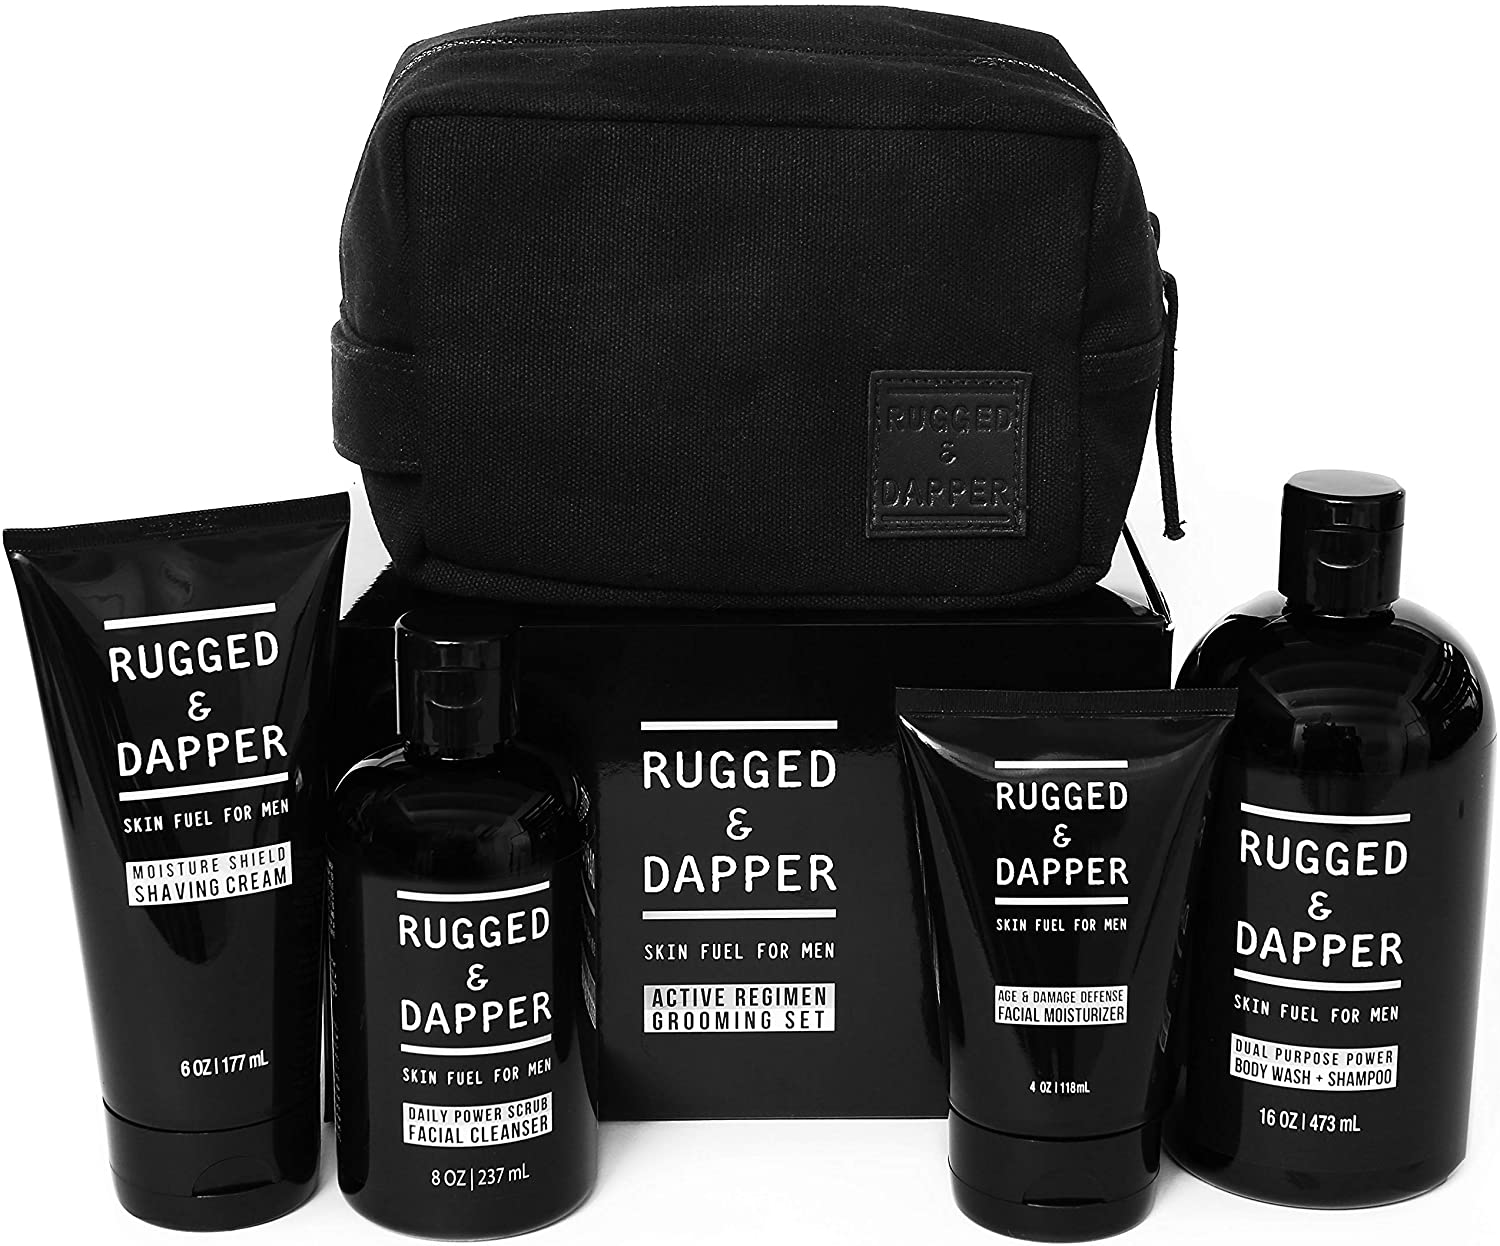 Rugged & Dapper Active Regimen Grooming and Skincare Set for Men; best skincare sets for men / skincare gift sets